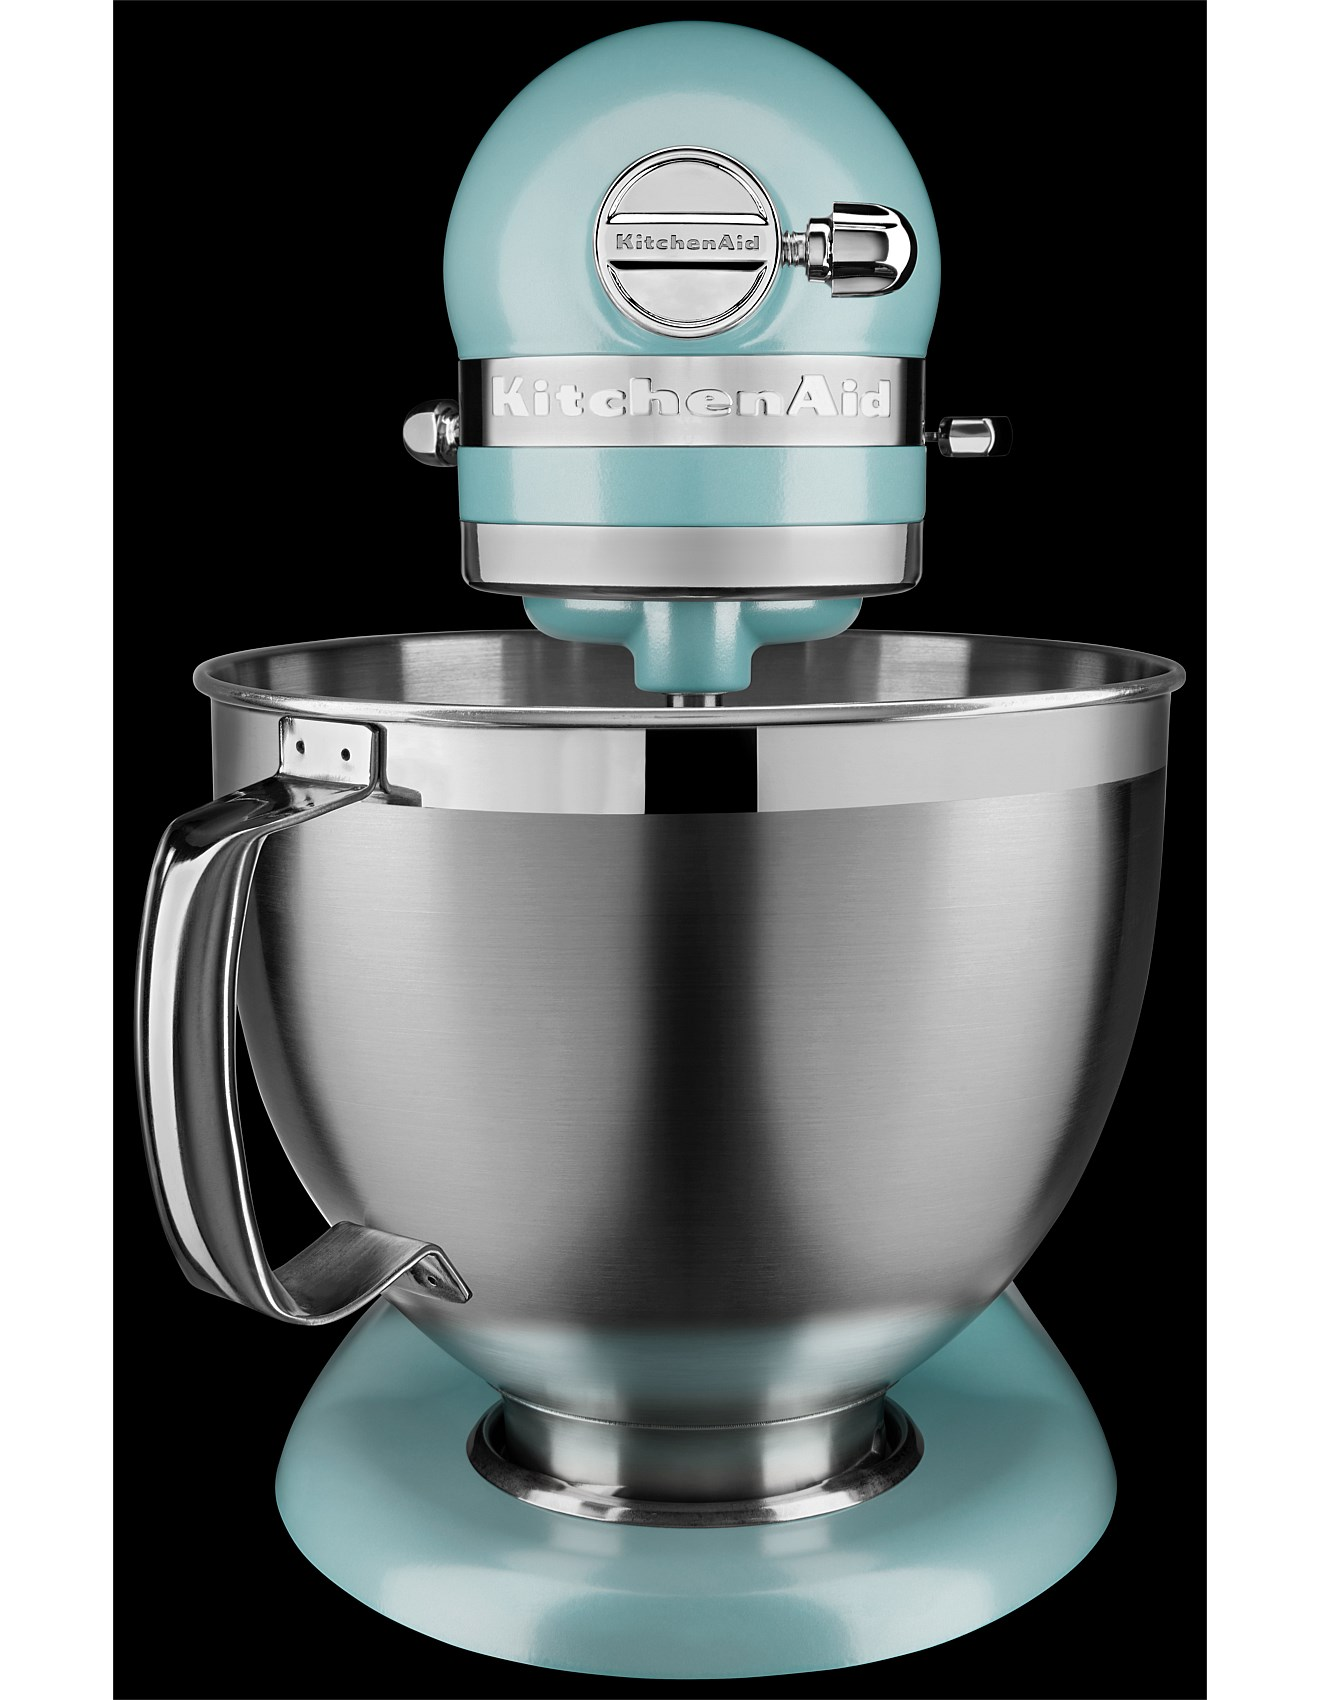 Kitchenaid Kitchenaid Mixers Processors Online David